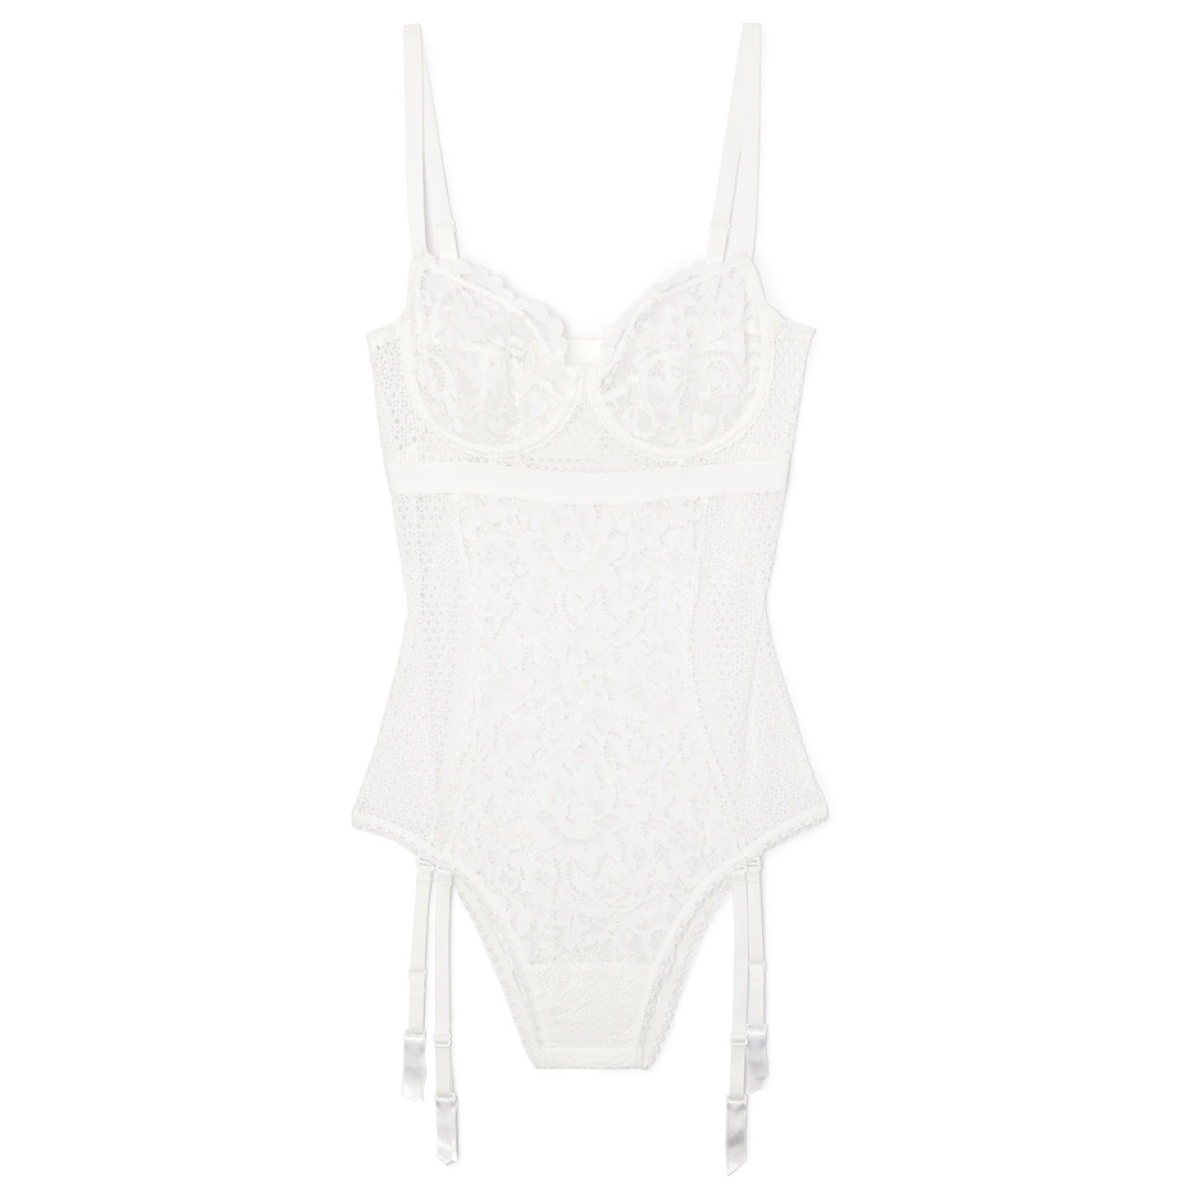 ELSE PETUNIA UNDERWIRE BODYSUIT WITH REMOVABLE SUSPENDERS